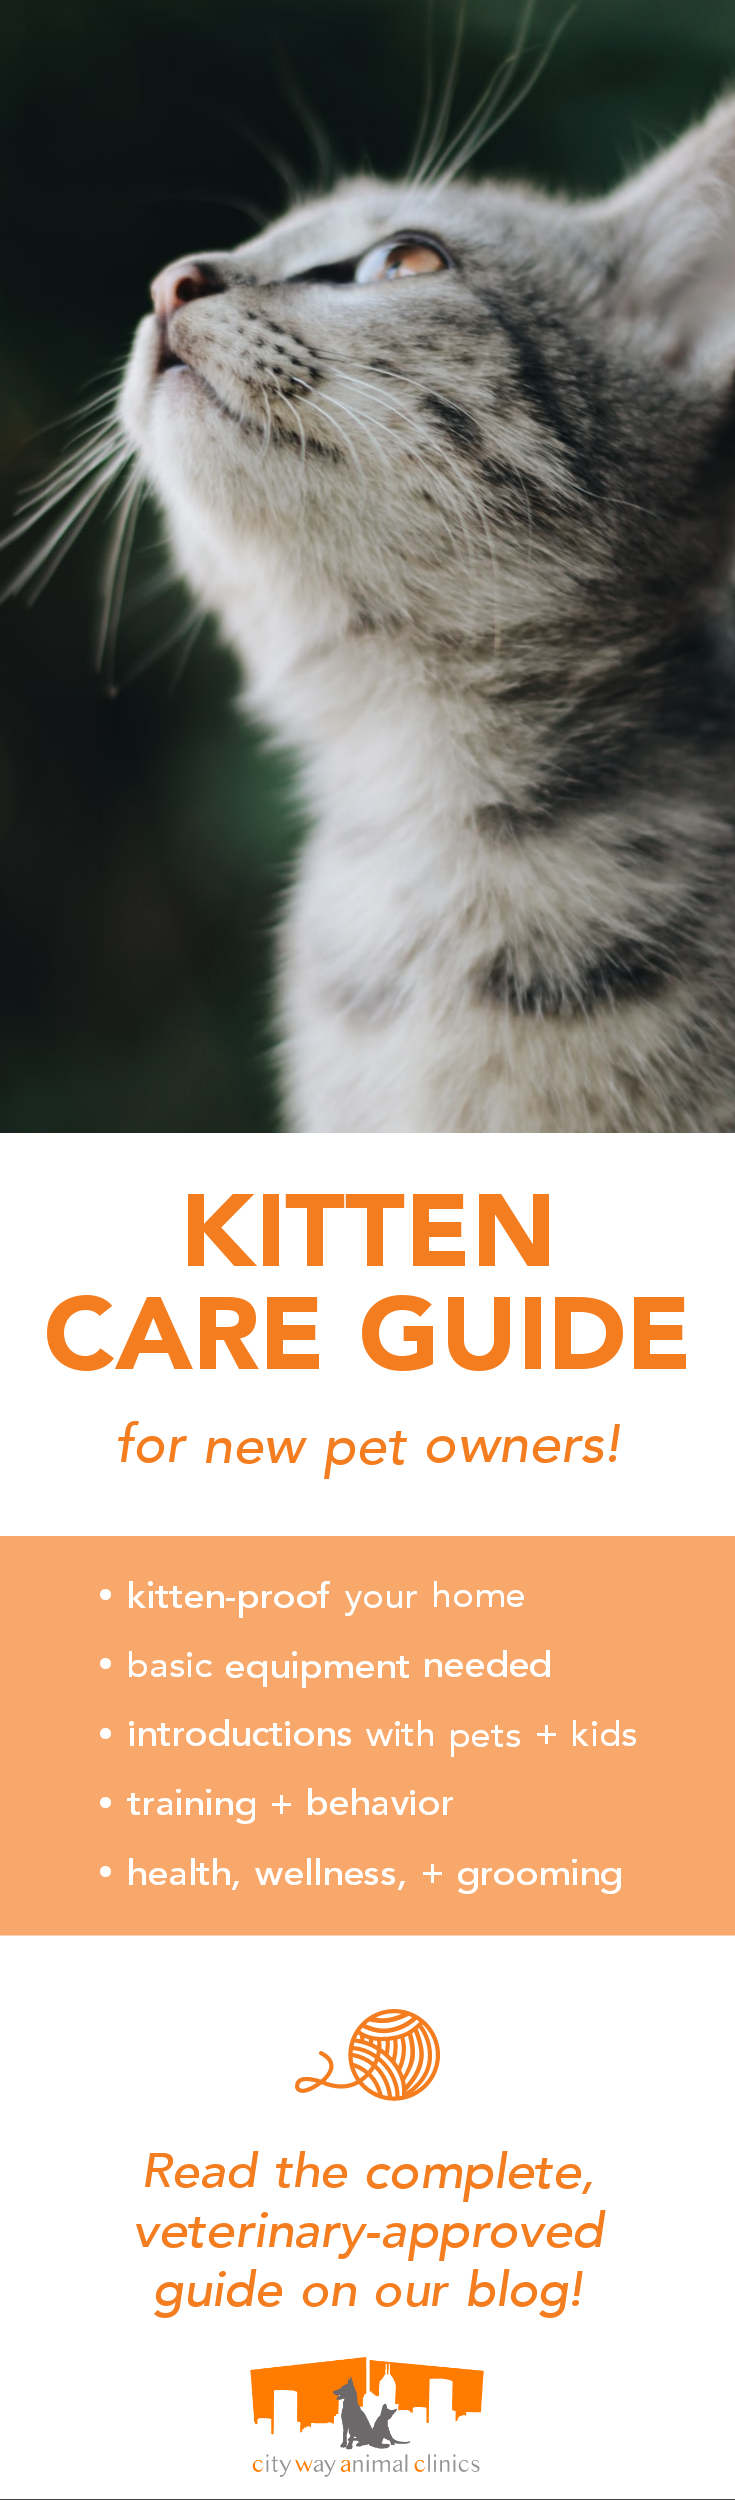 Vet Approved Kitten Care Guide In 2020 Pet Clinic Kitten Care Kitten